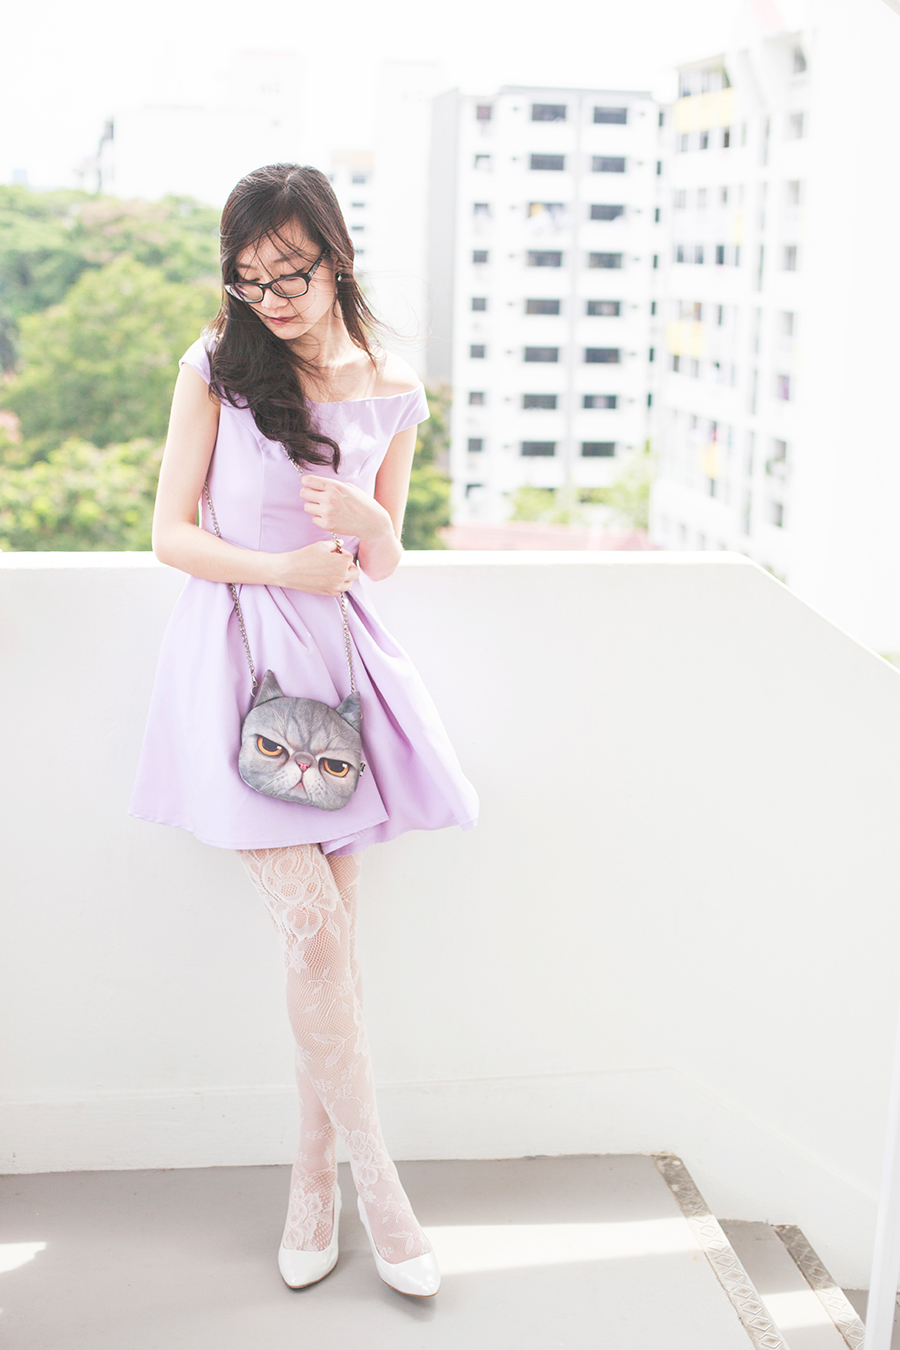 Wedding bridesmaid outfit: The Velvet Dolls Arianna Off-Shoulder Dress in Lilac, Miwo grumpy cat face bag, Forever 21 white lace tights, Vincci white pumps, Osewaya mermaid earrings, Gap black frame glasses